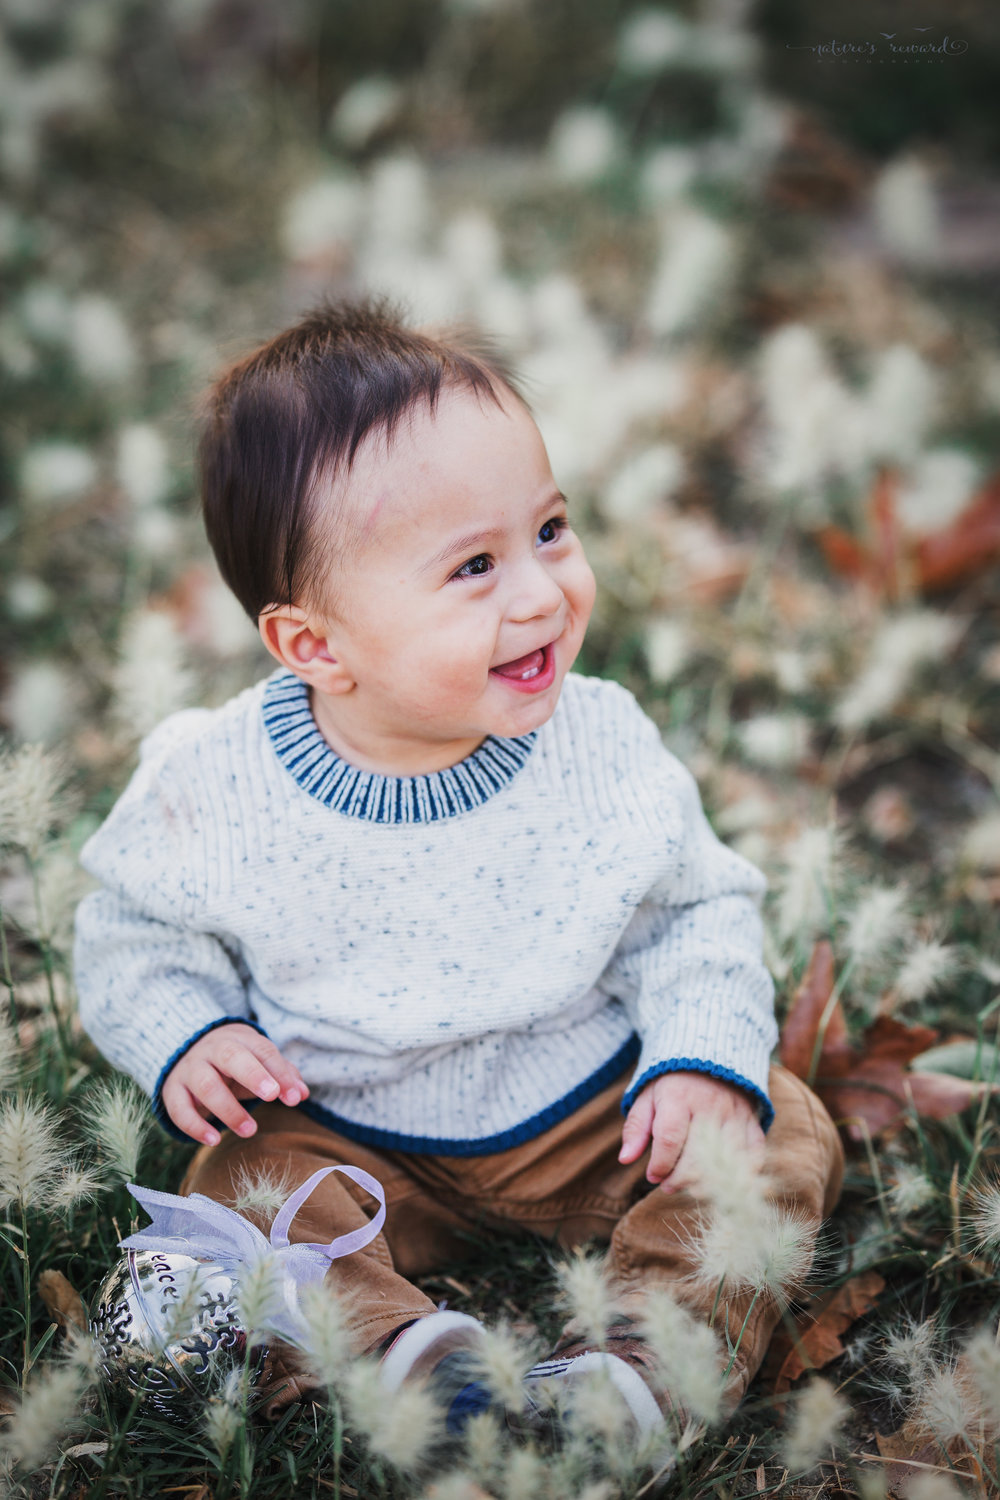 Darling 6 month old baby boy smiling away during his sitter portrait by Nature's Reward Photography